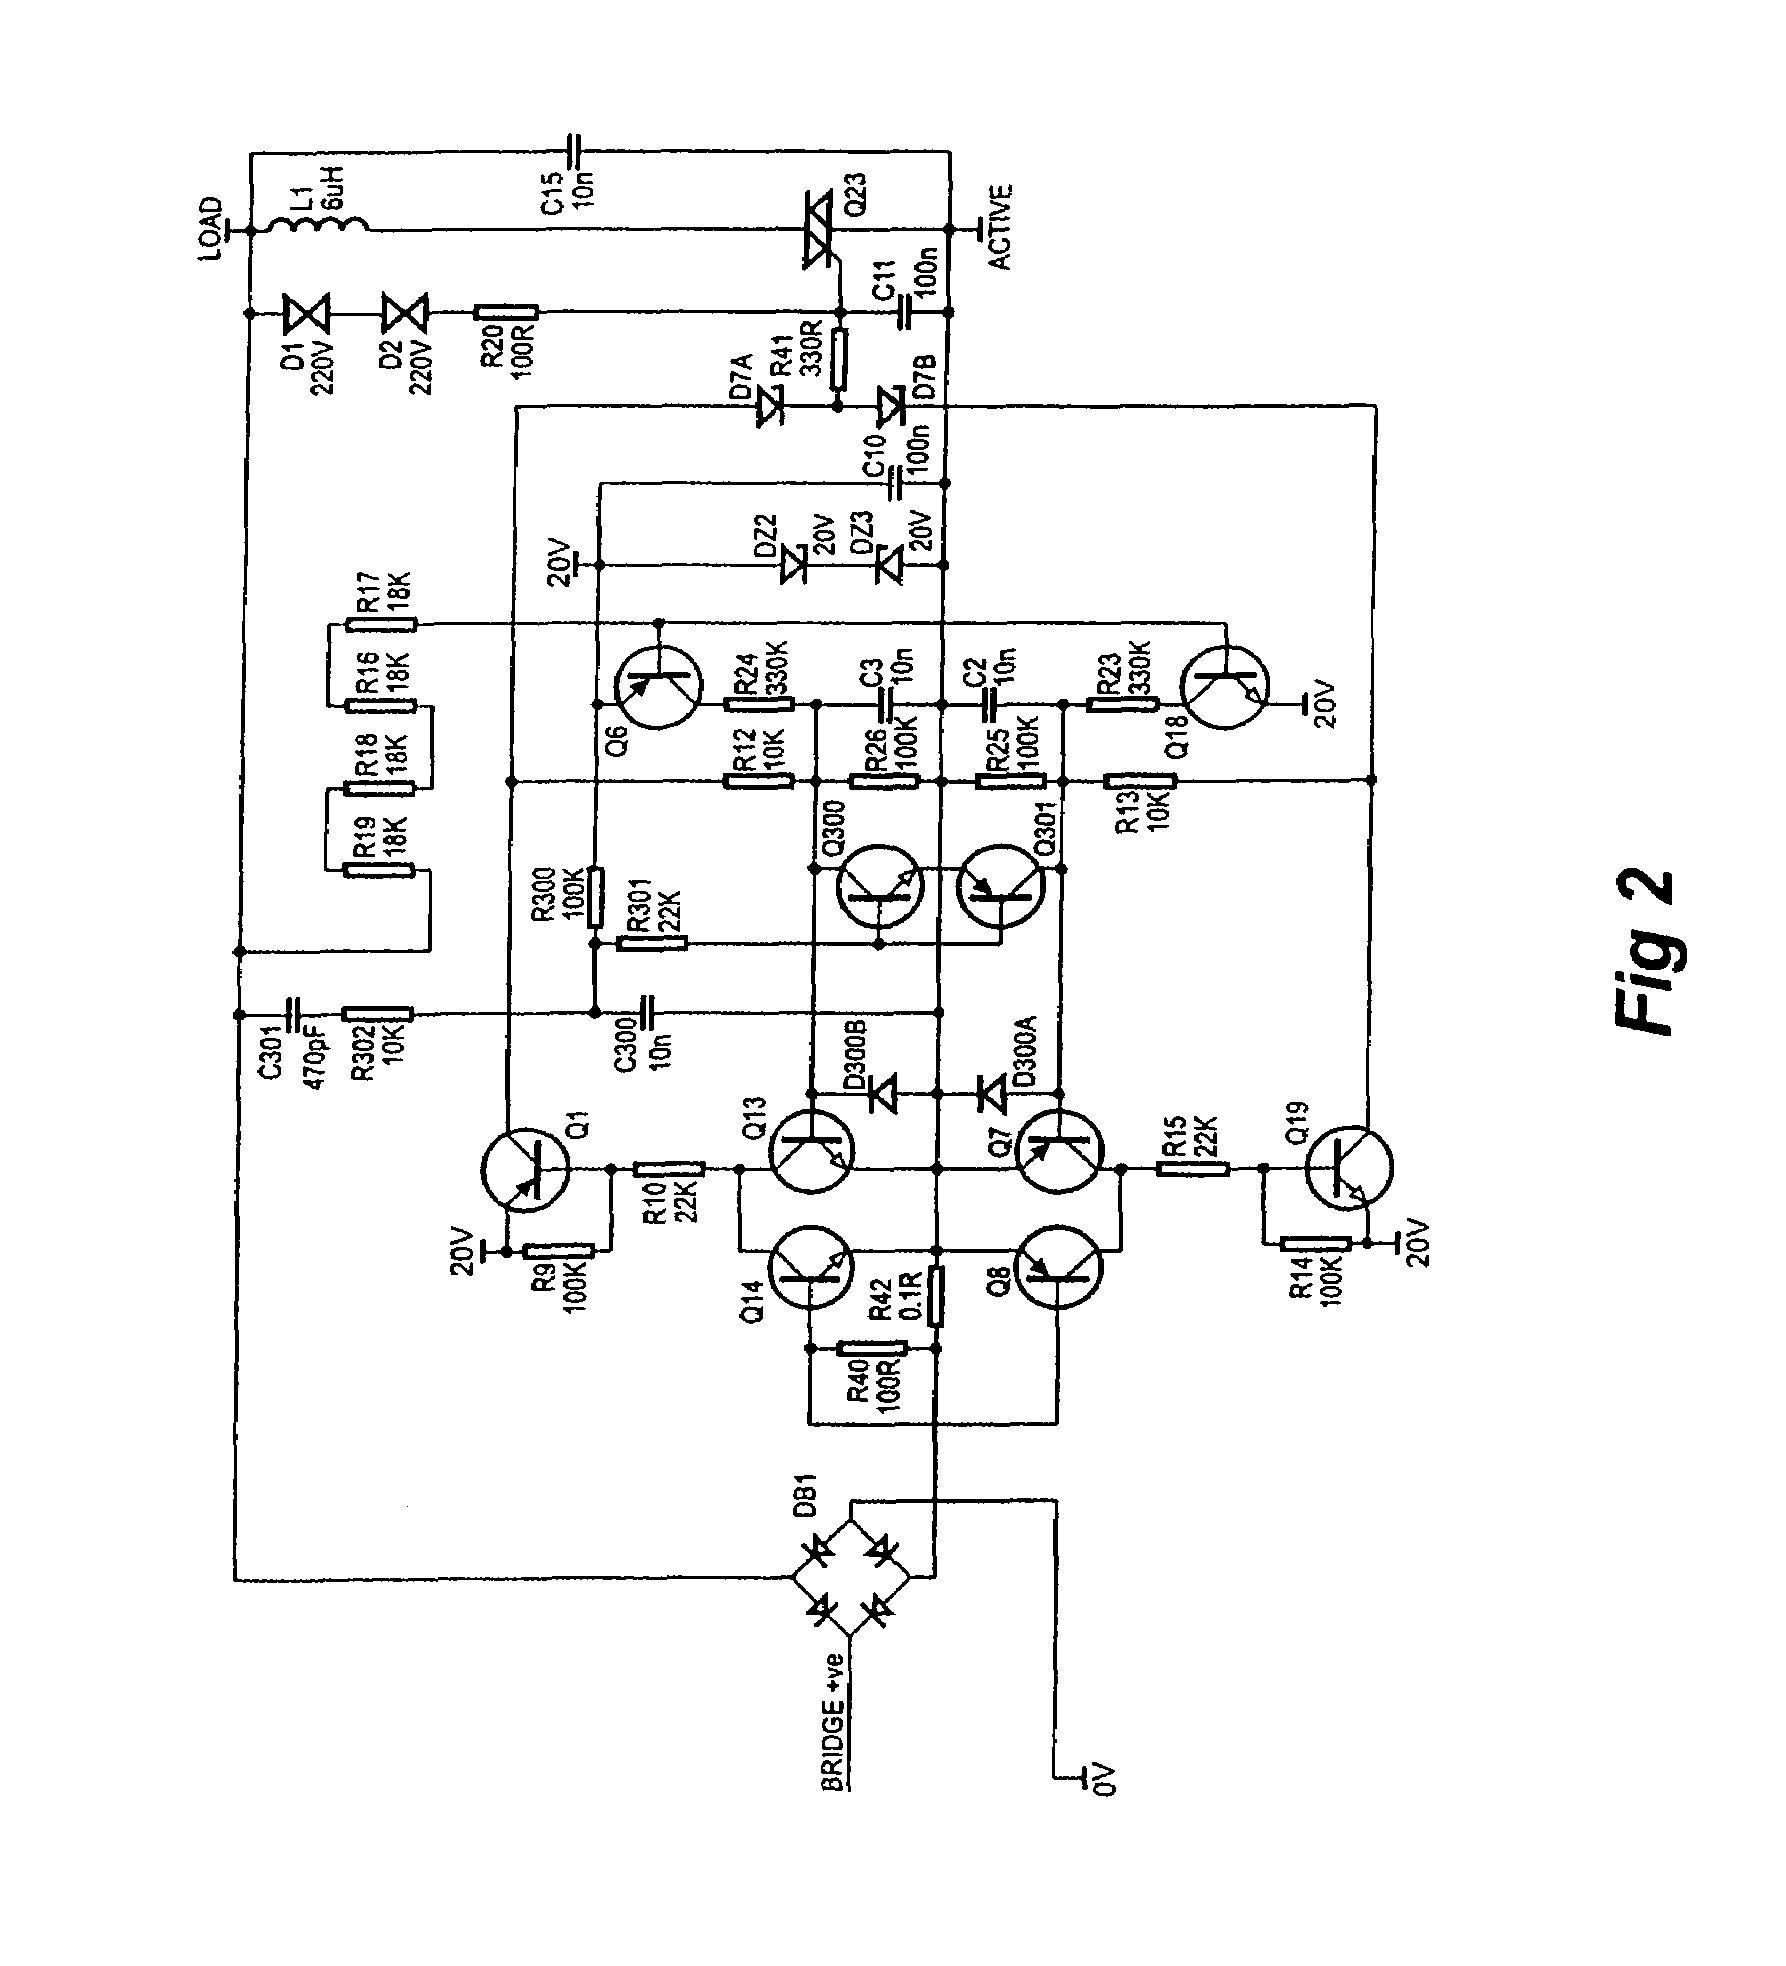 patent us7339331 dimmer circuit improved ripple control patent drawing